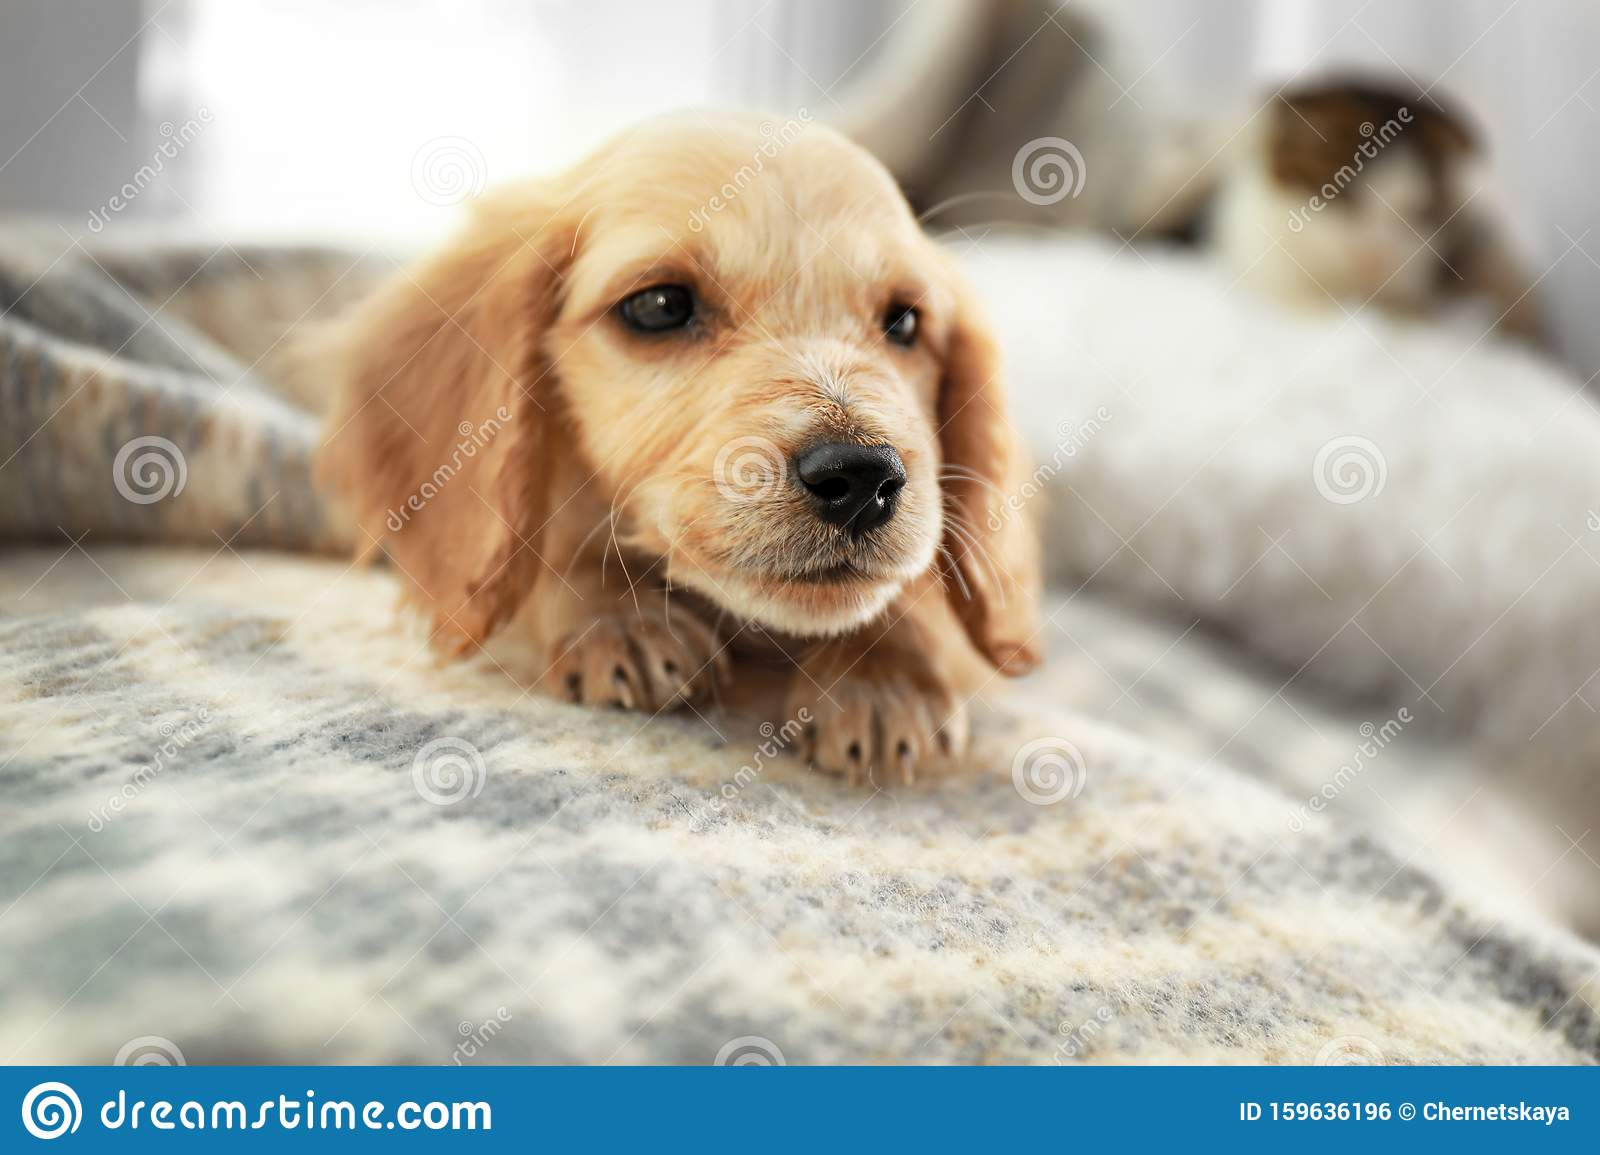 Cute English Cocker Spaniel Puppy On Blanket Stock Photo Image Of Background Indoors 159636196